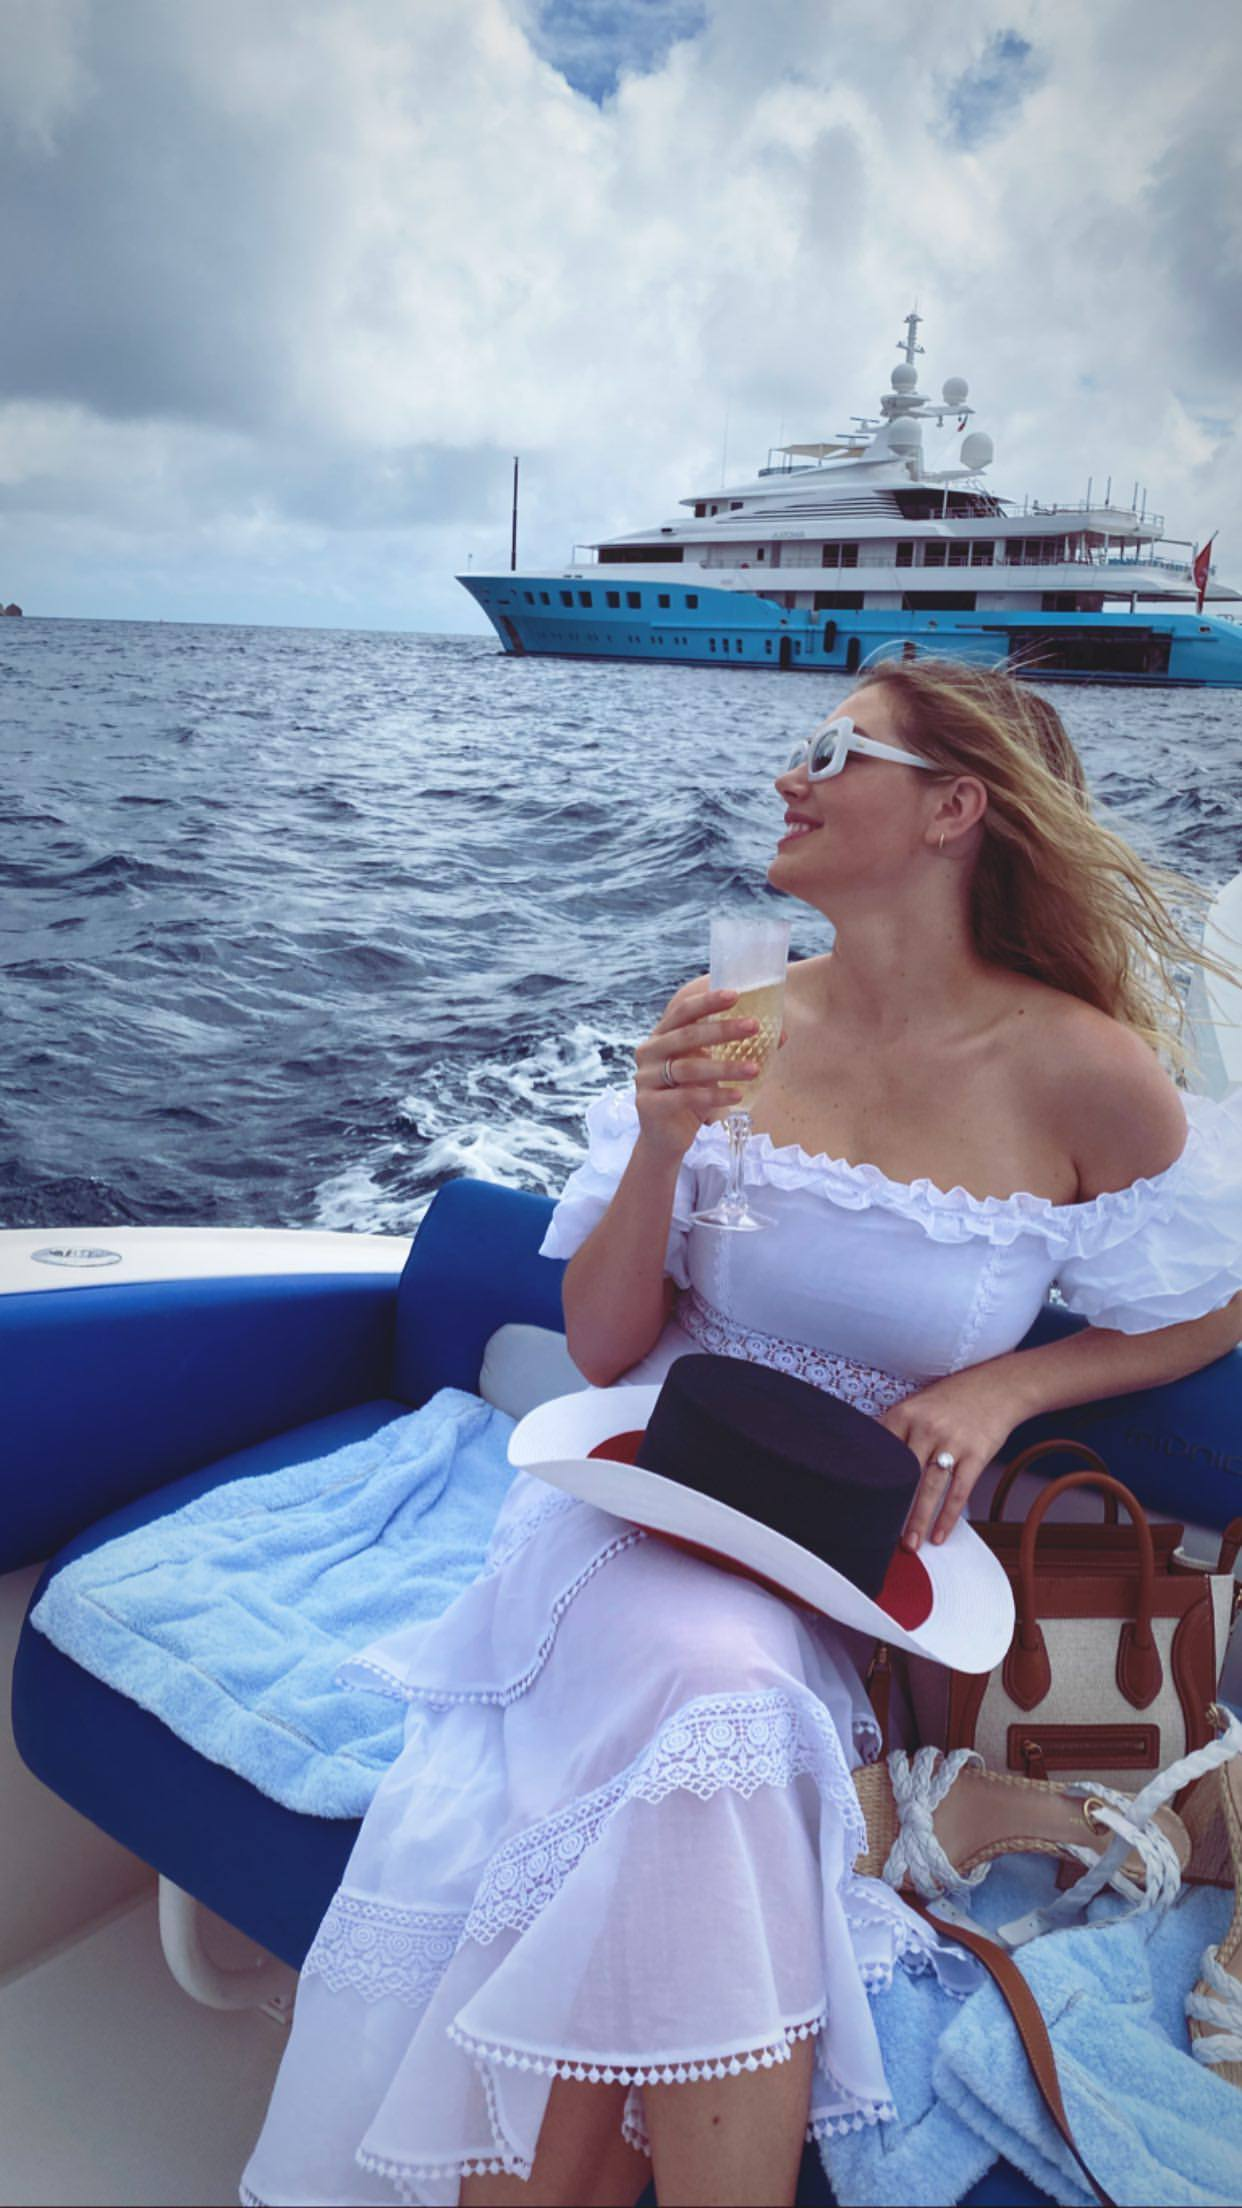 Kate Upton Sexy On A Boat